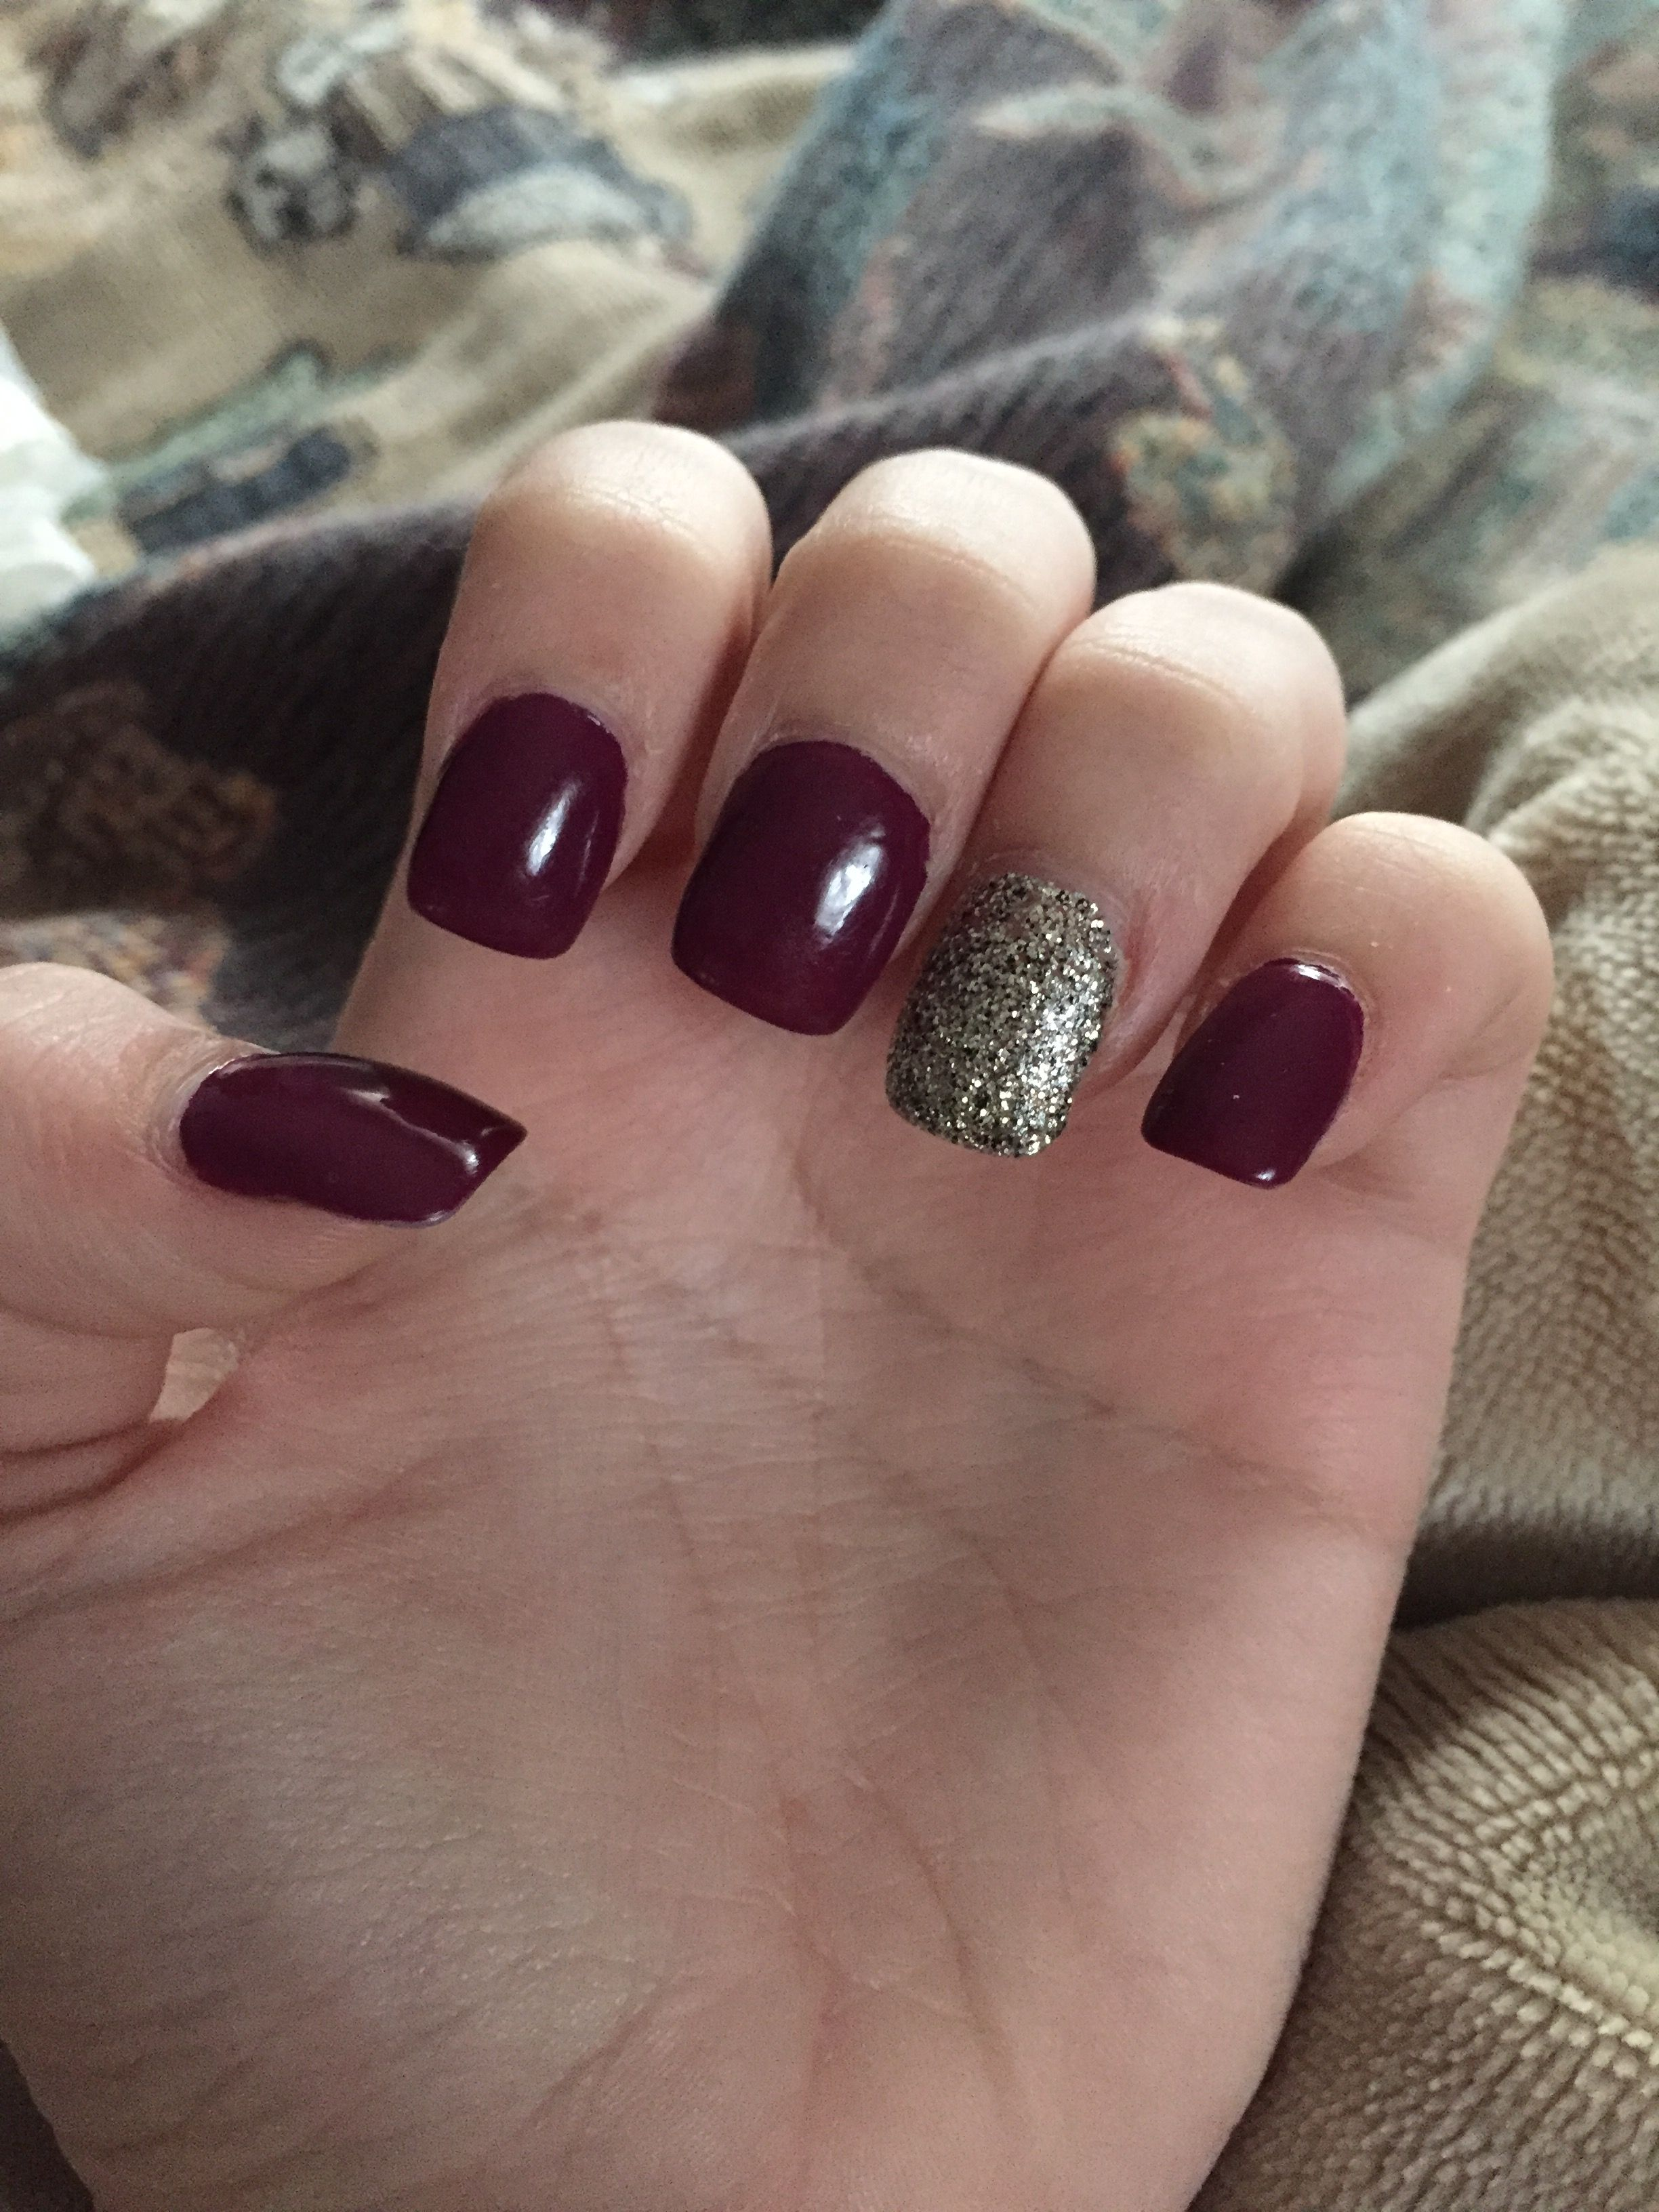 Wine Color Nails : color, nails, Acrylic, Nails, Purple/wine, Color, White, Nails,, Manicure,, Designs